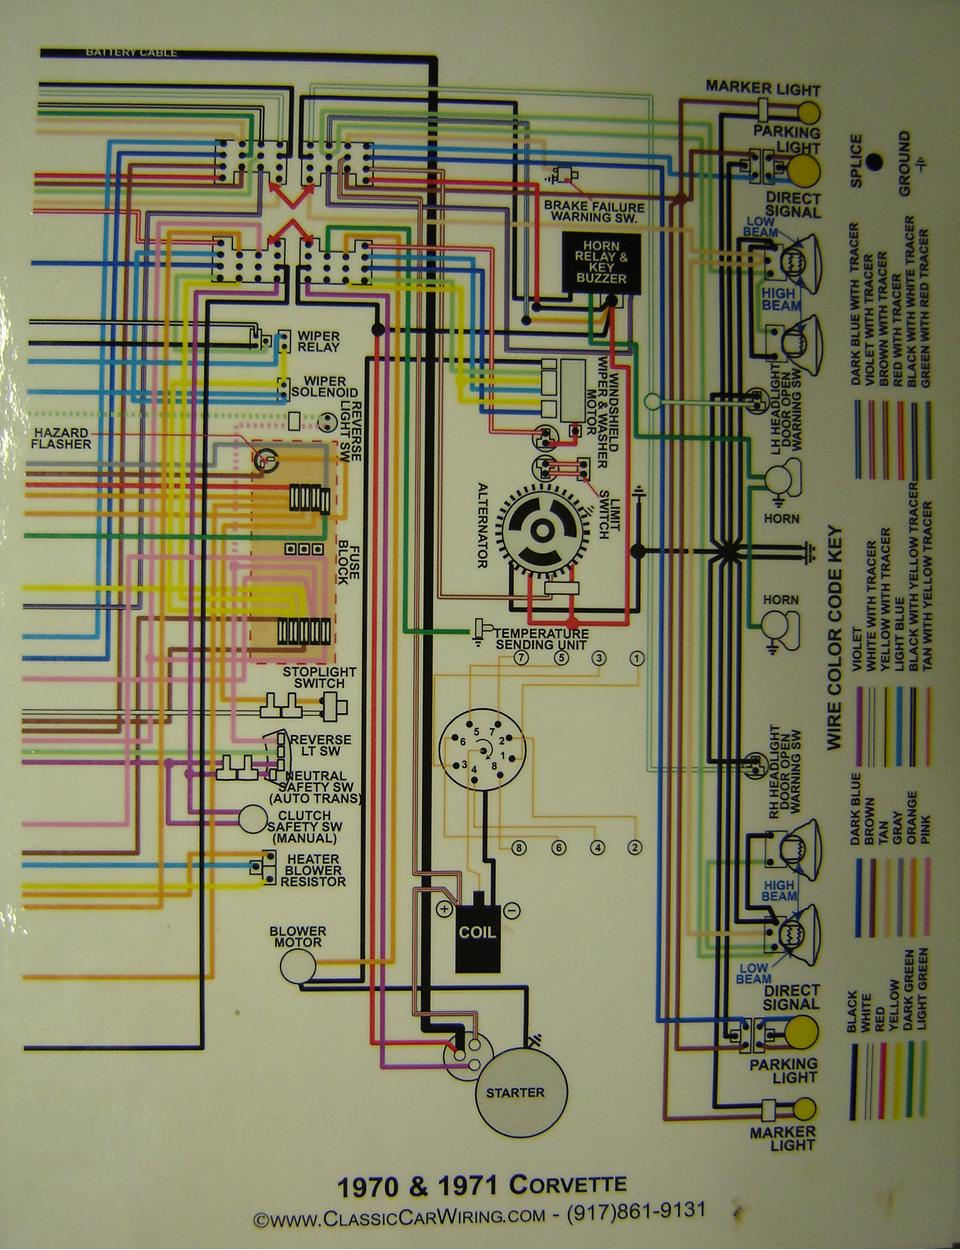 1970 71 corvette color wiring diagram B chevy diagrams 1966 corvette wiring diagram pdf at mifinder.co